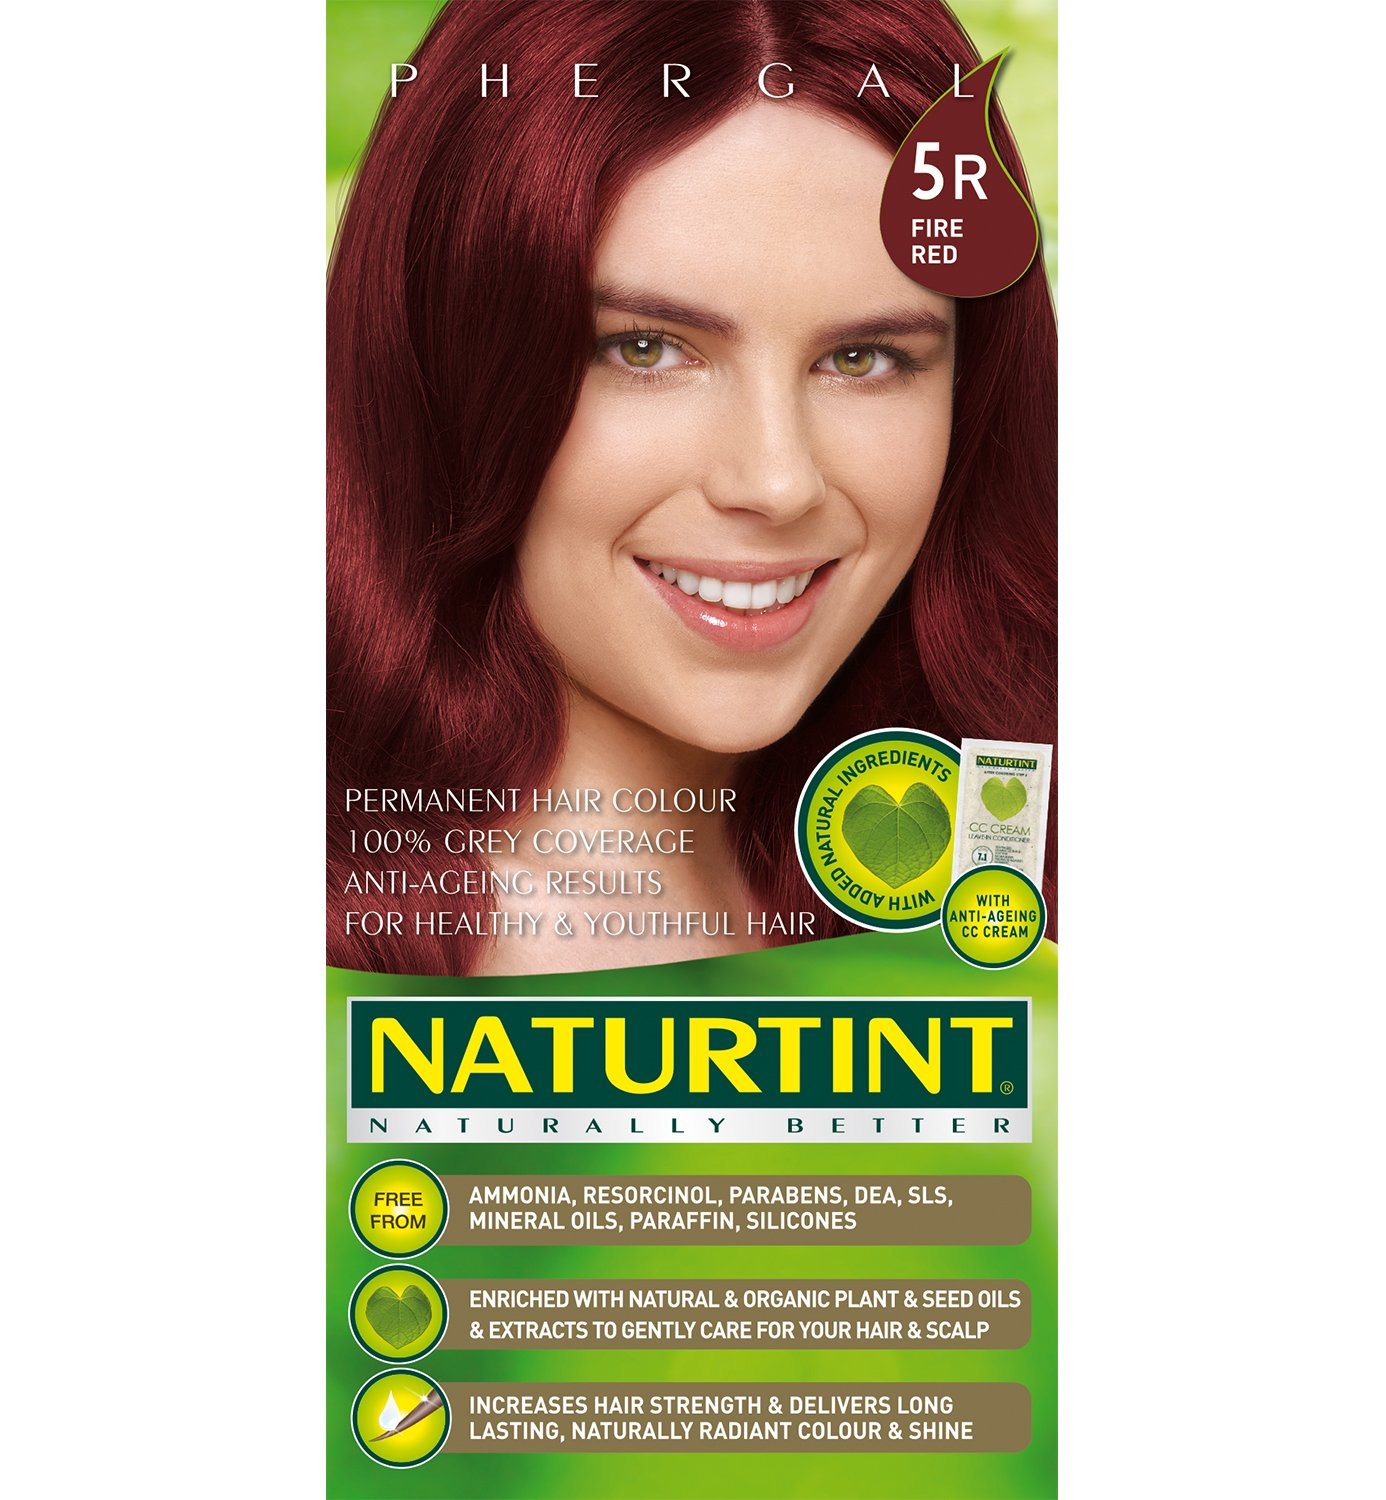 Naturtint Permanent Hair Colour, 5R Fire Red 165 ml Nature' s Dream 82297